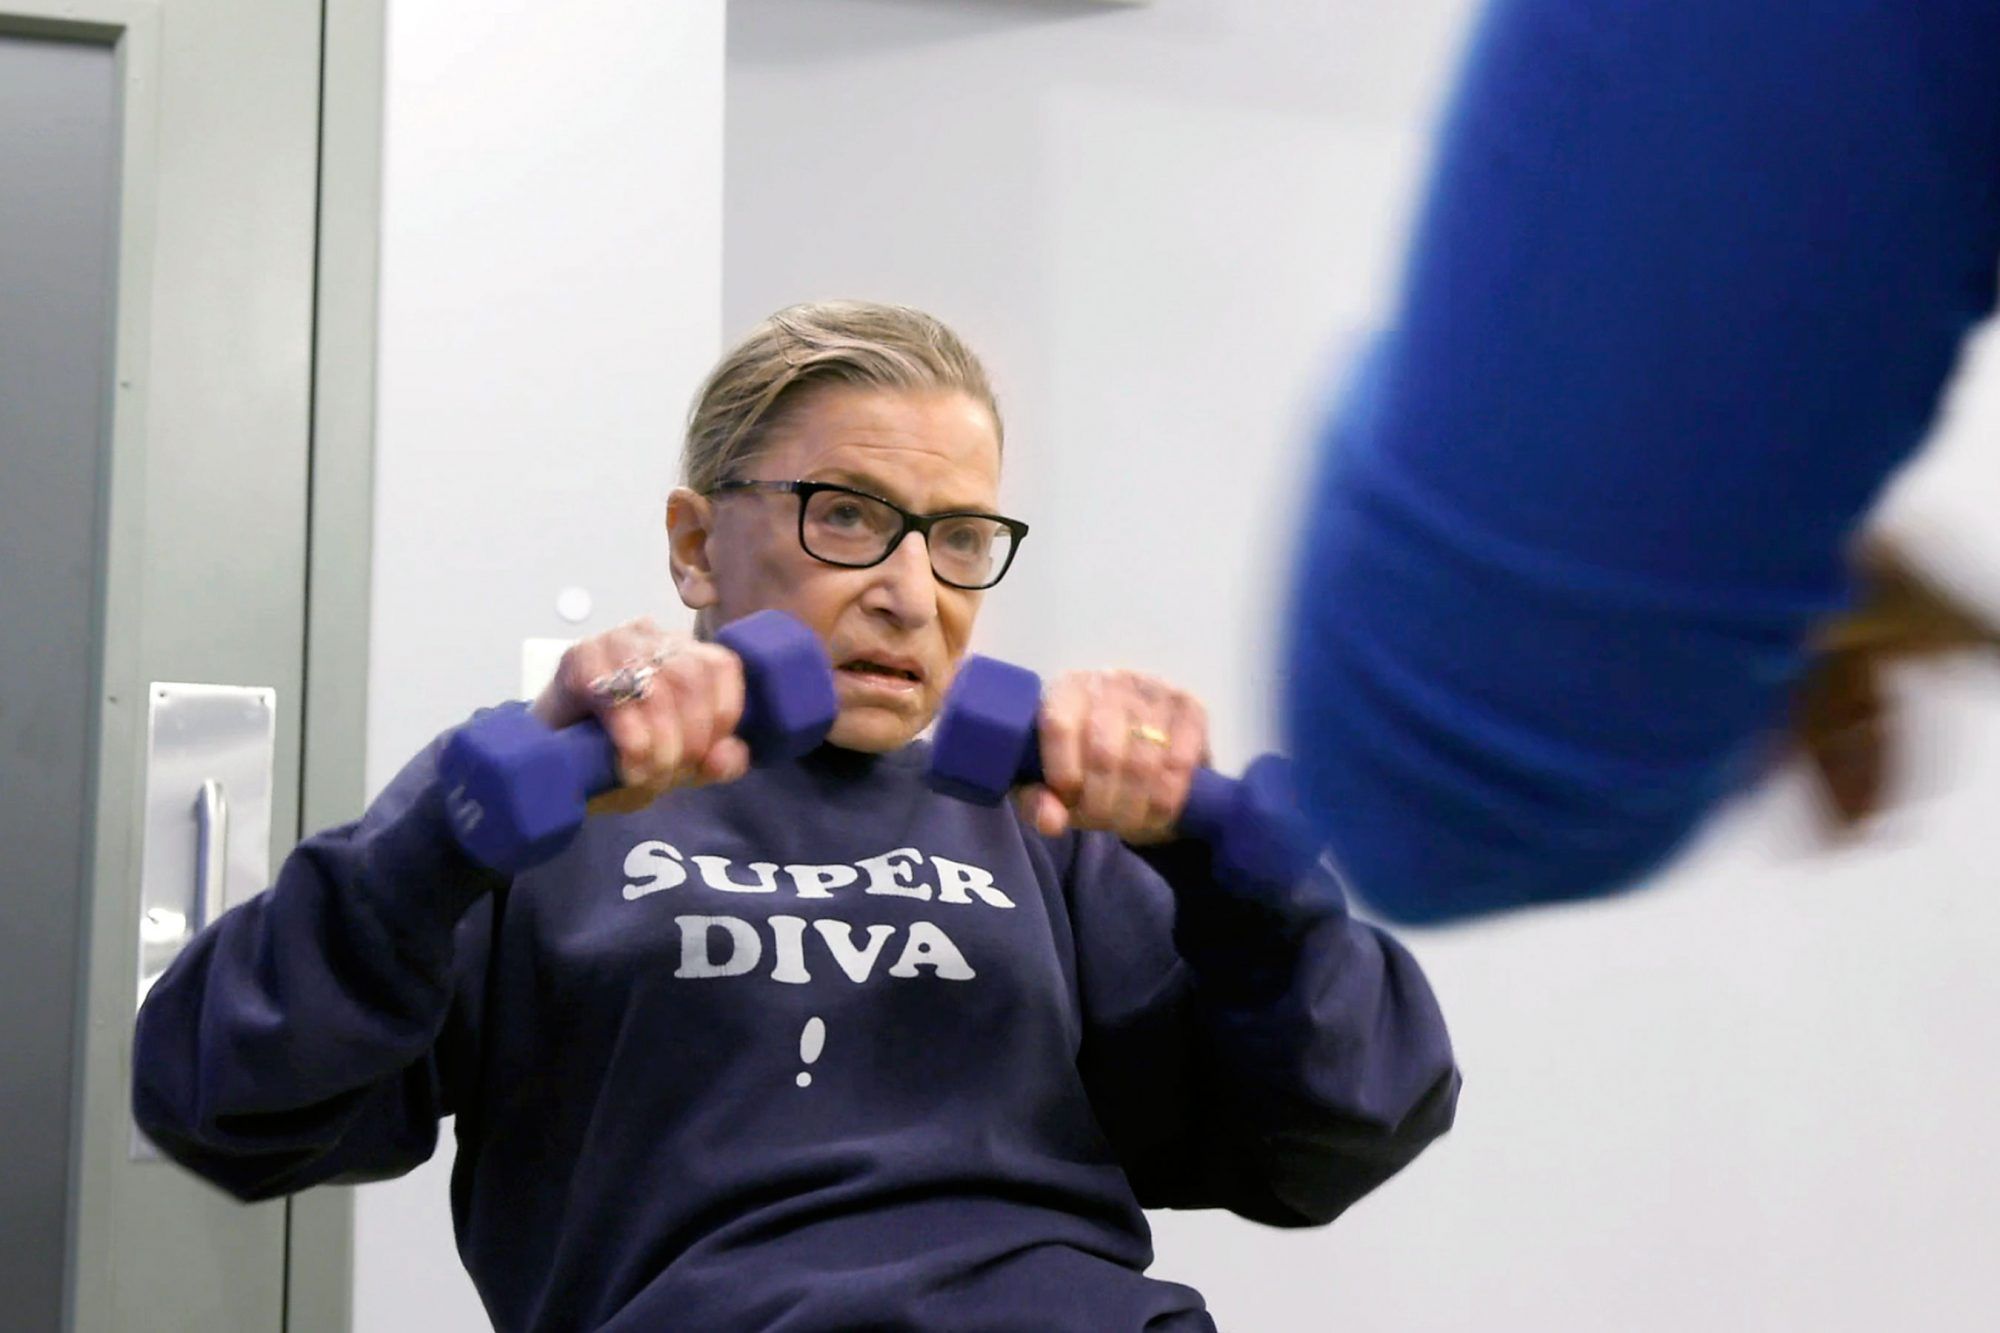 DOCUMENTARY: RBG